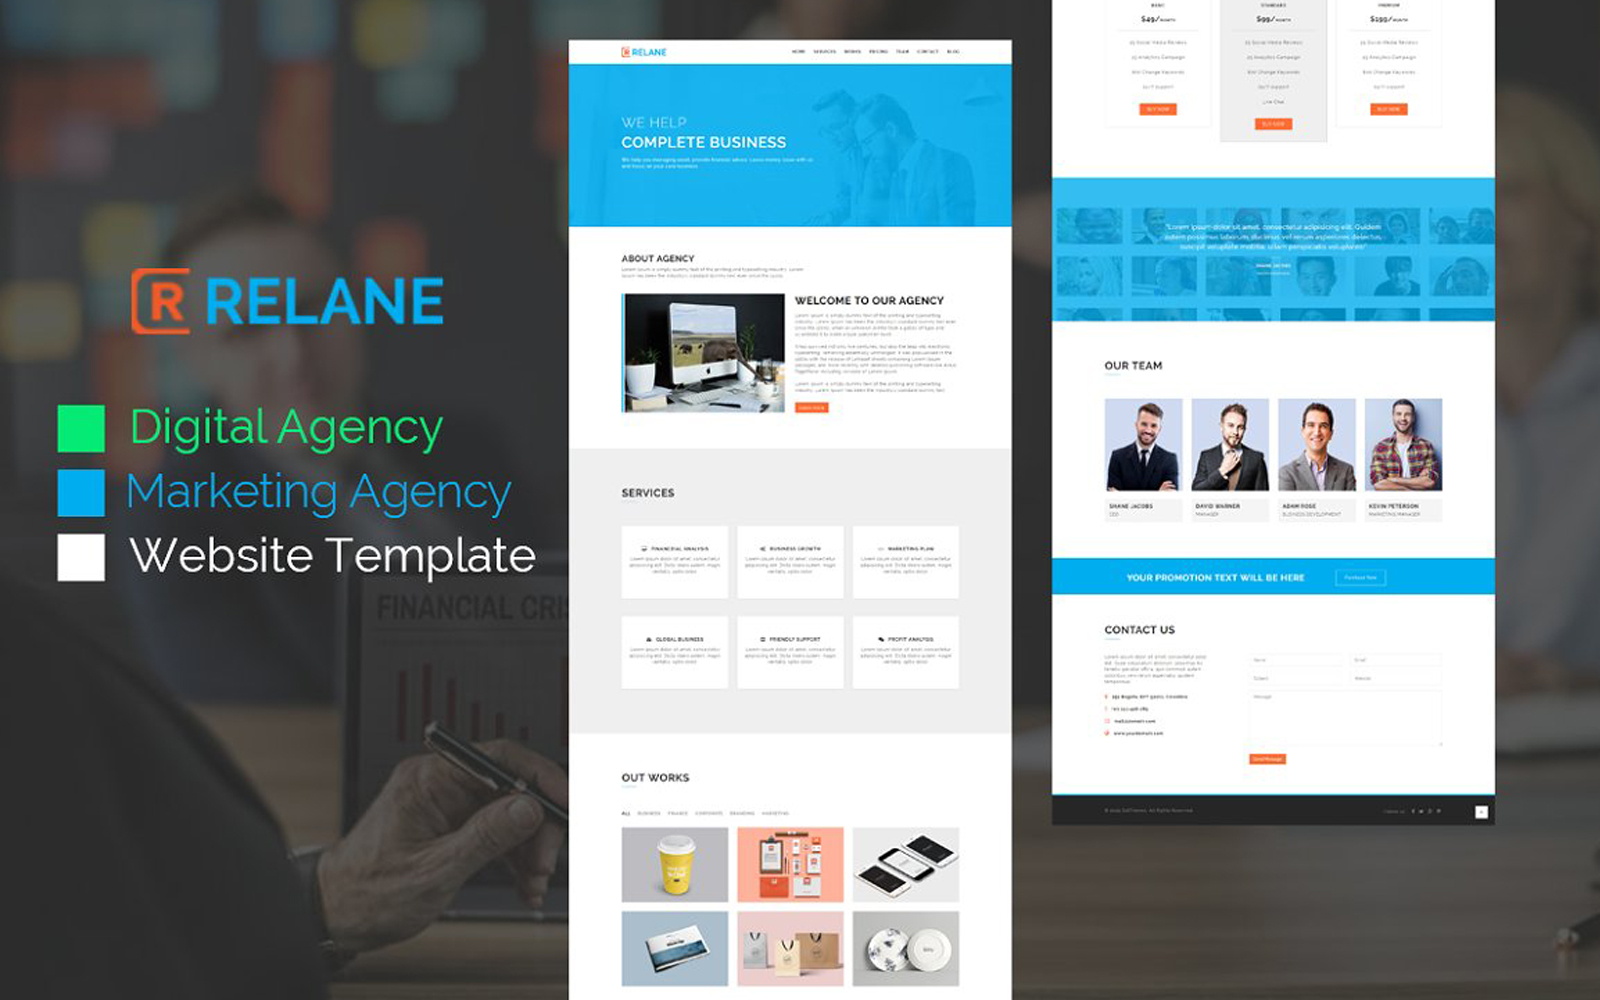 Relane - Marketing Agency HTML Landing Page Template